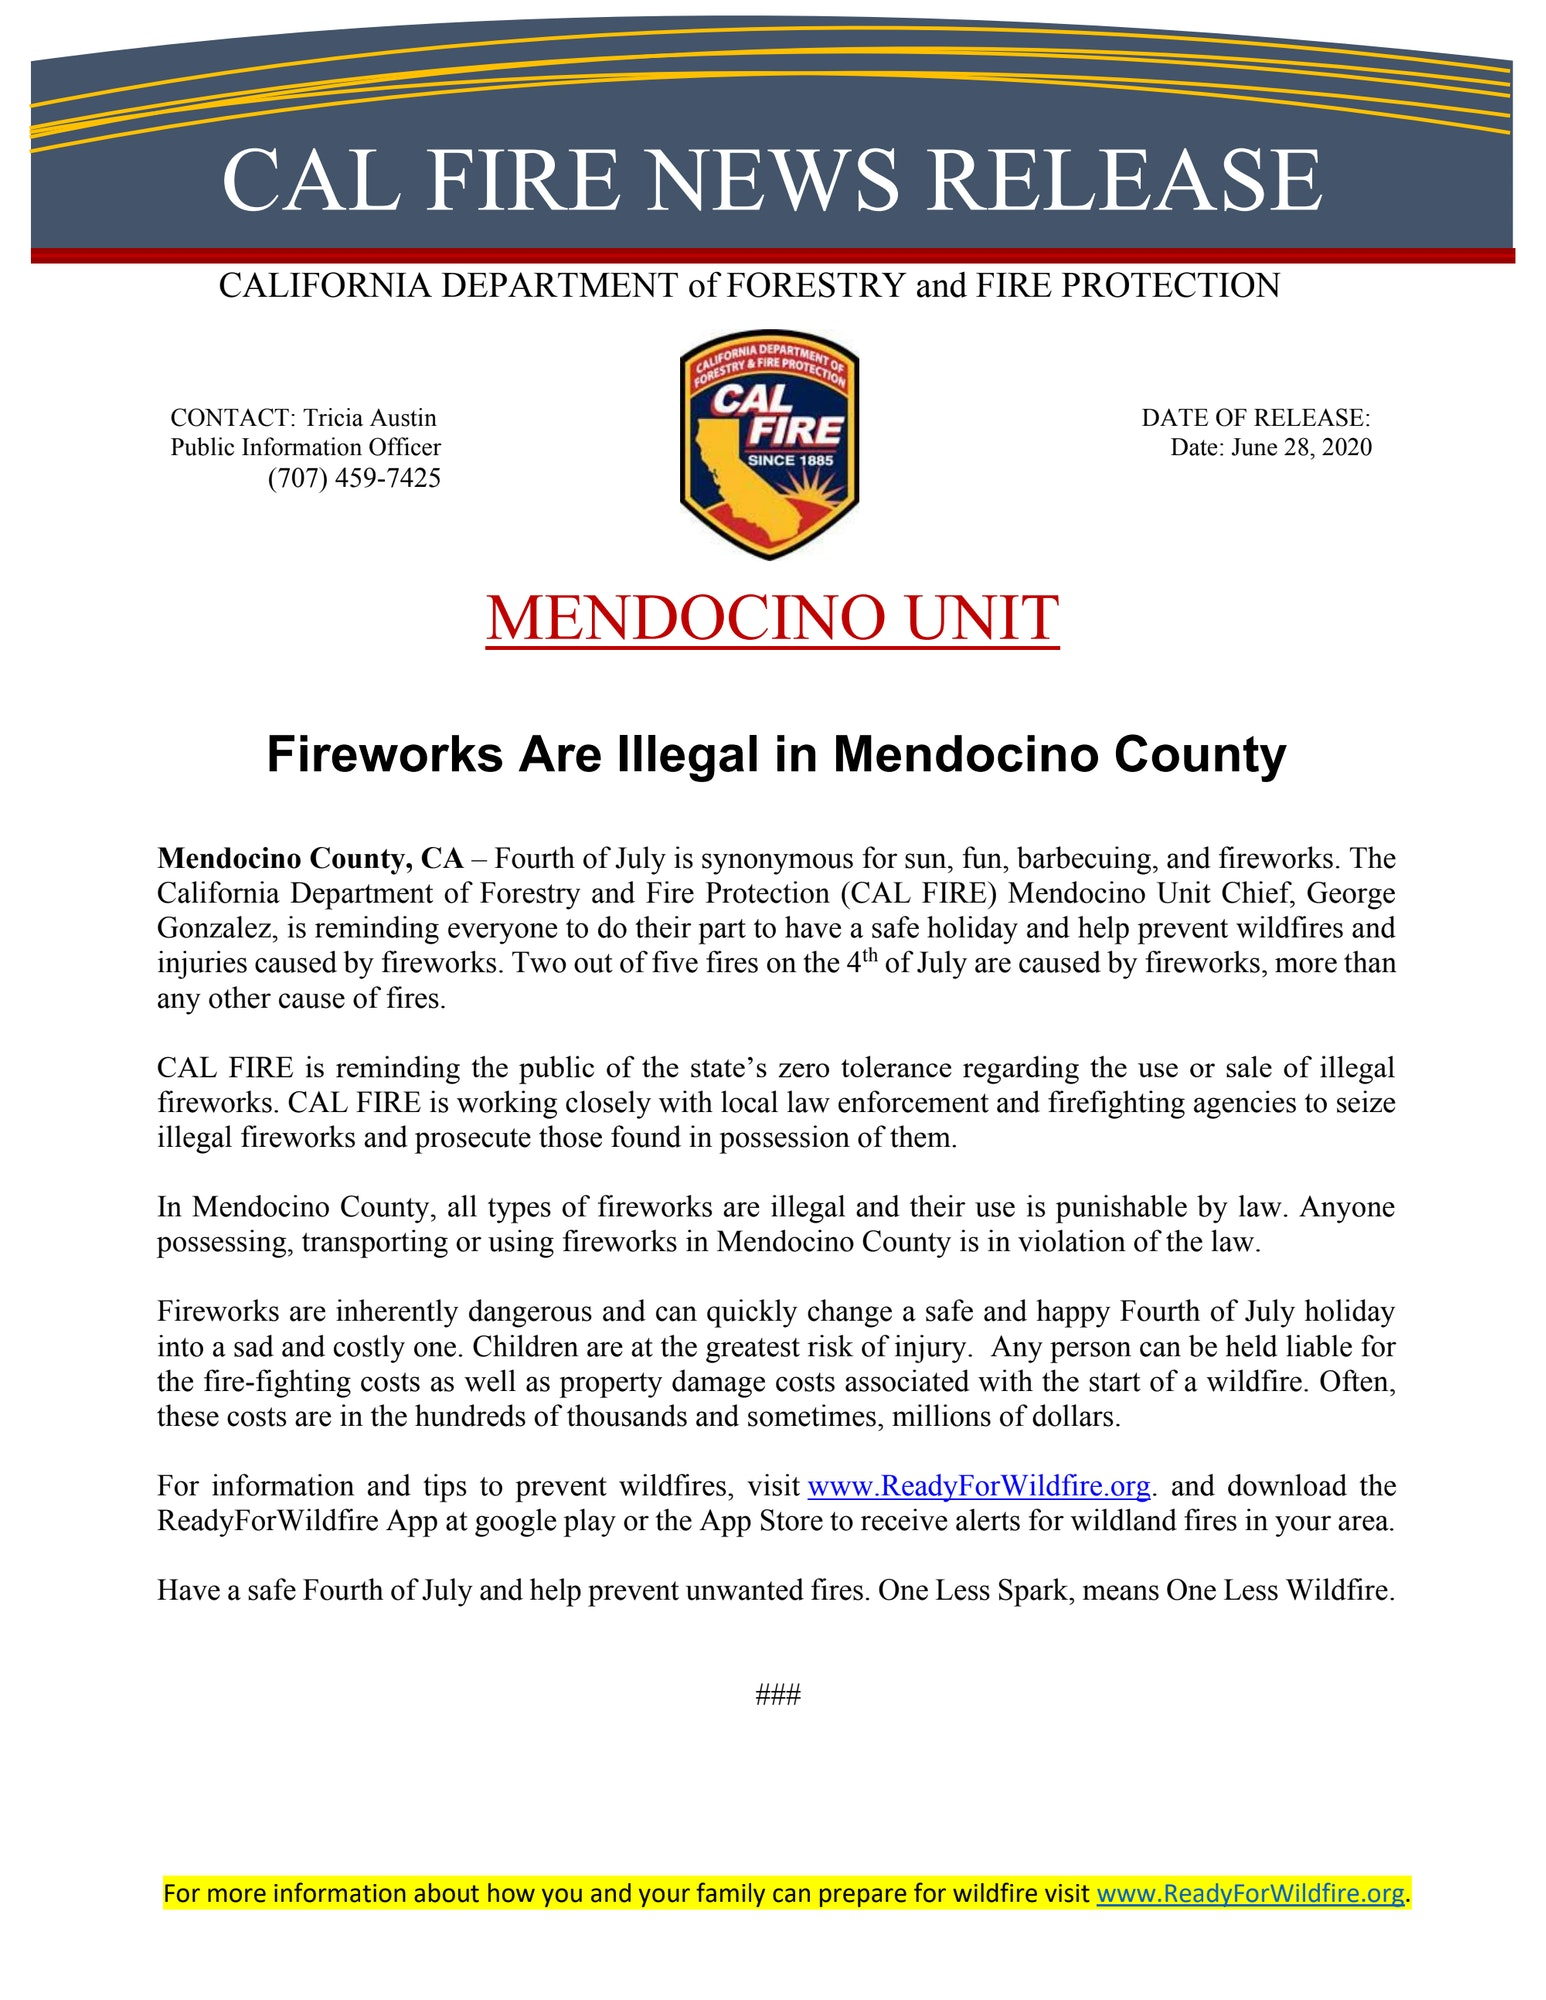 Fireworks Illegal in Mendocino County Press Release from CalFire